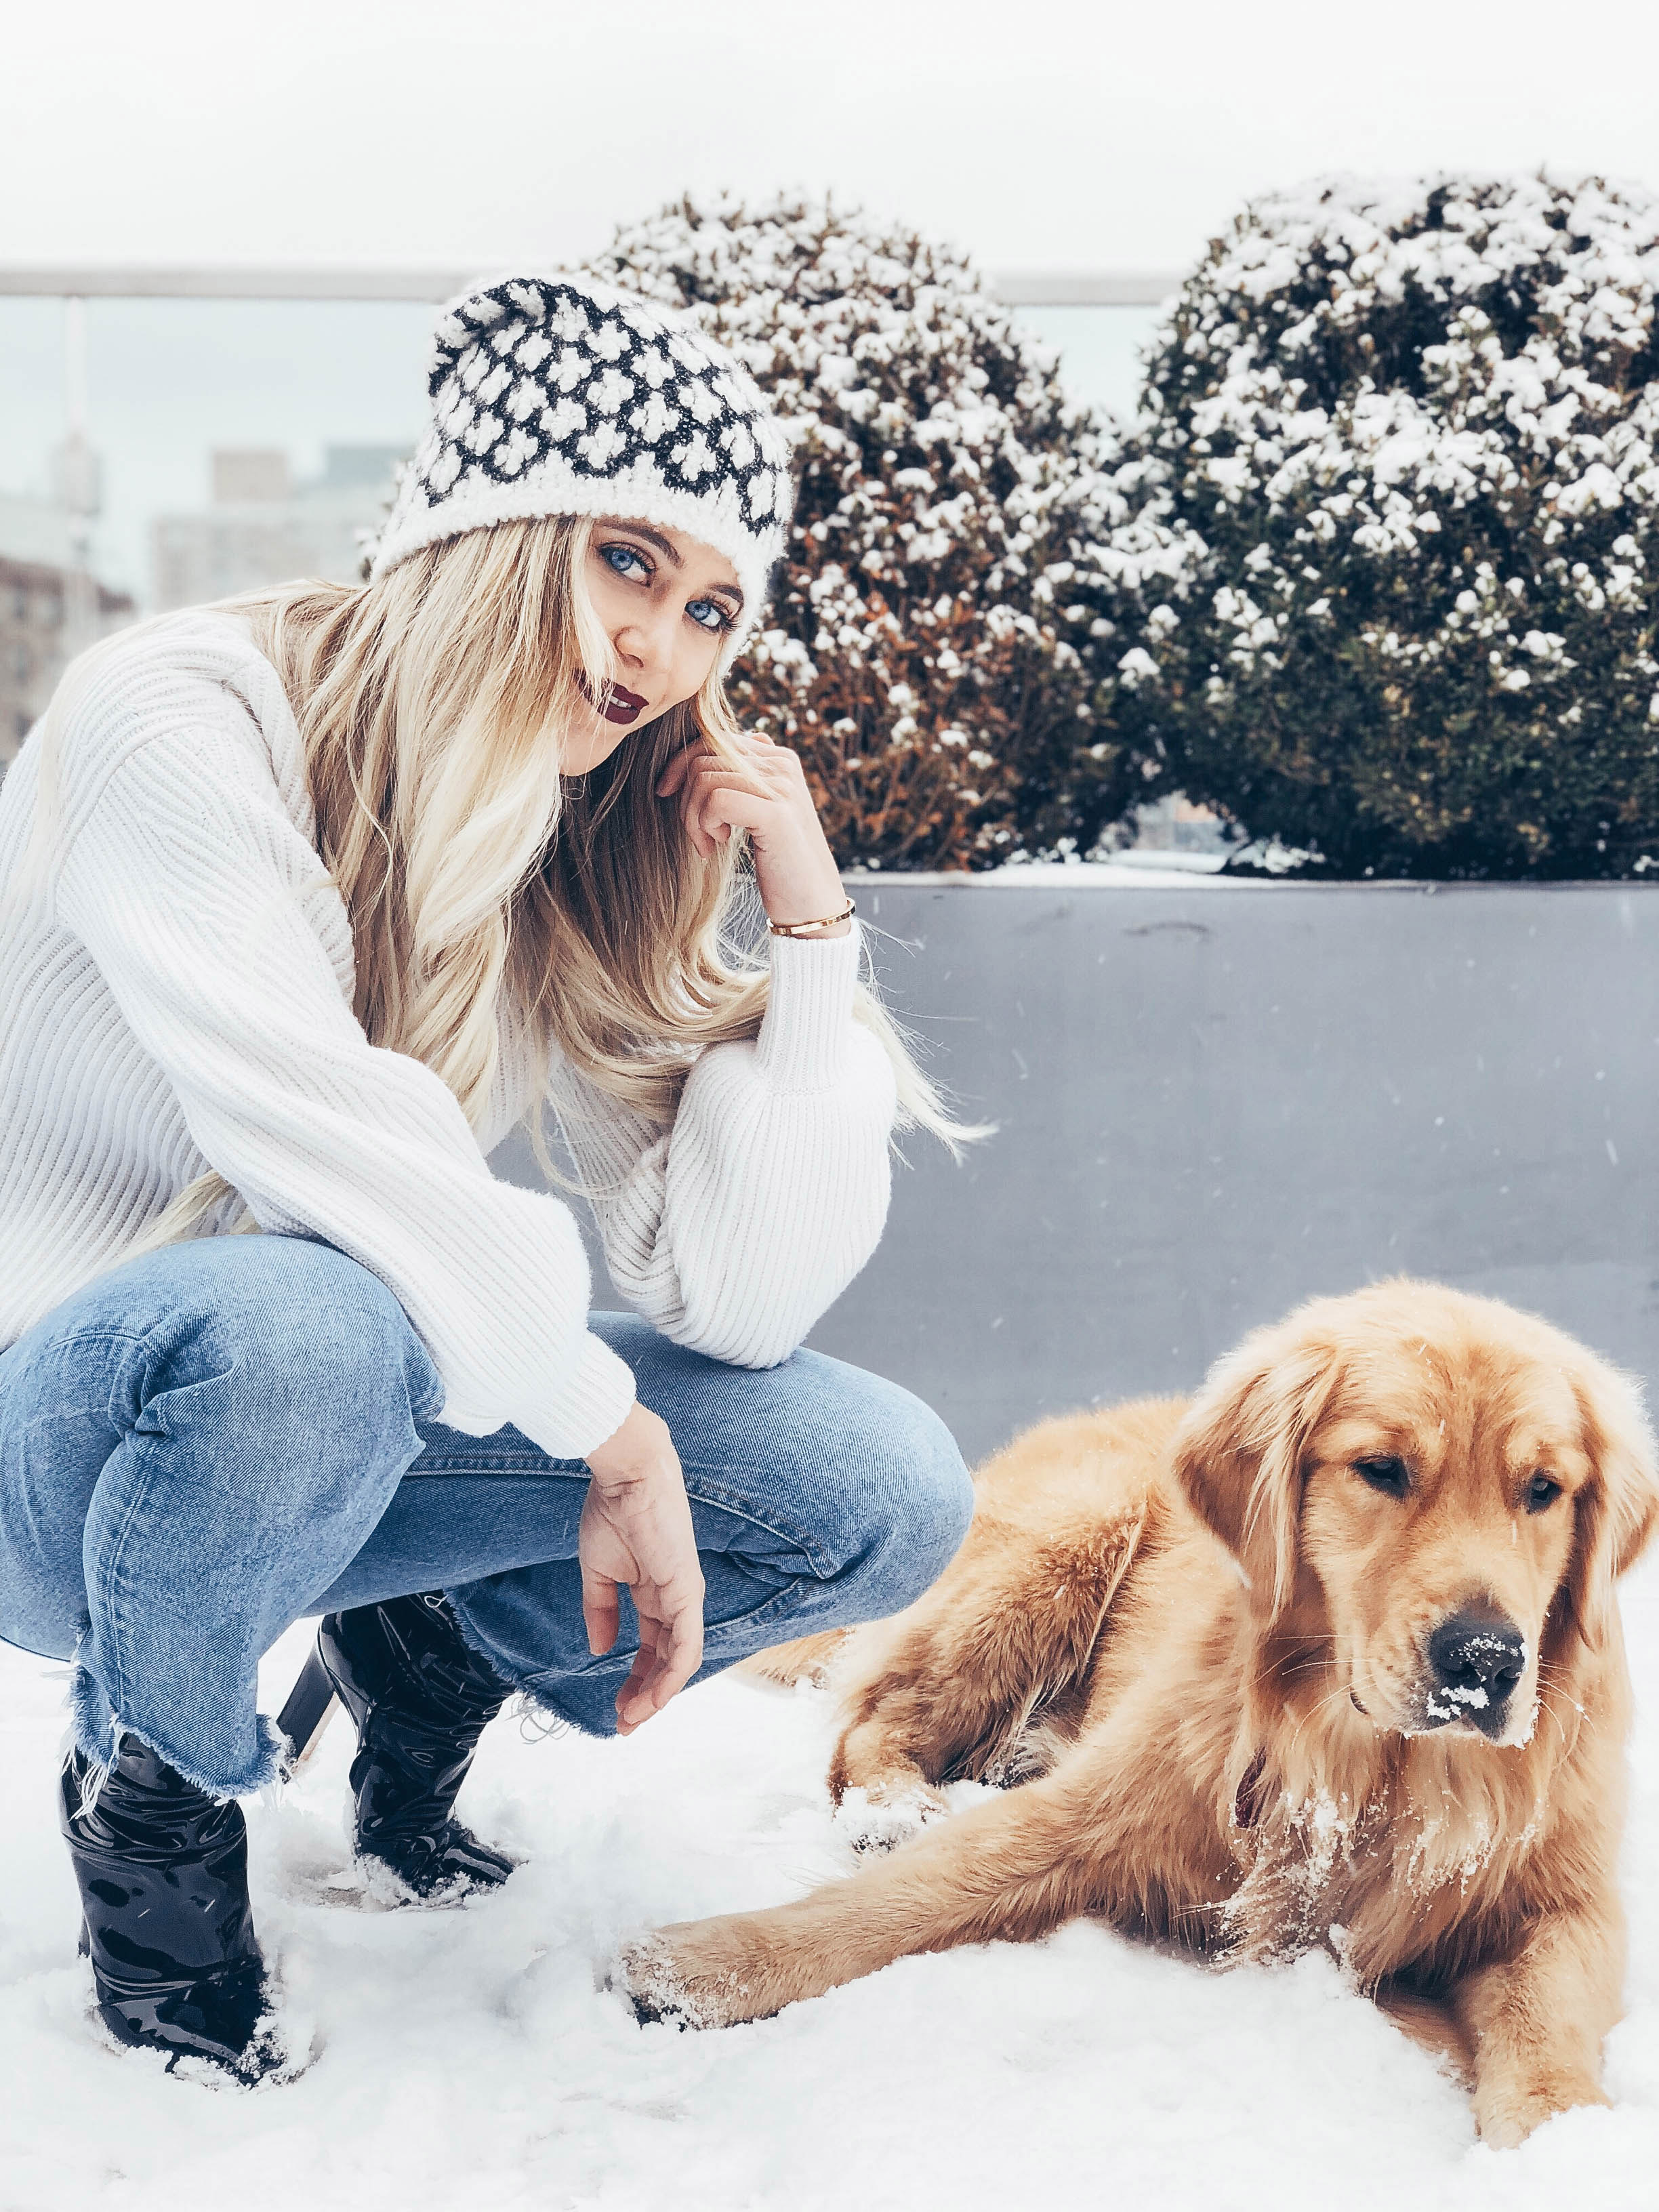 Victoria plaing in the snow with her pup